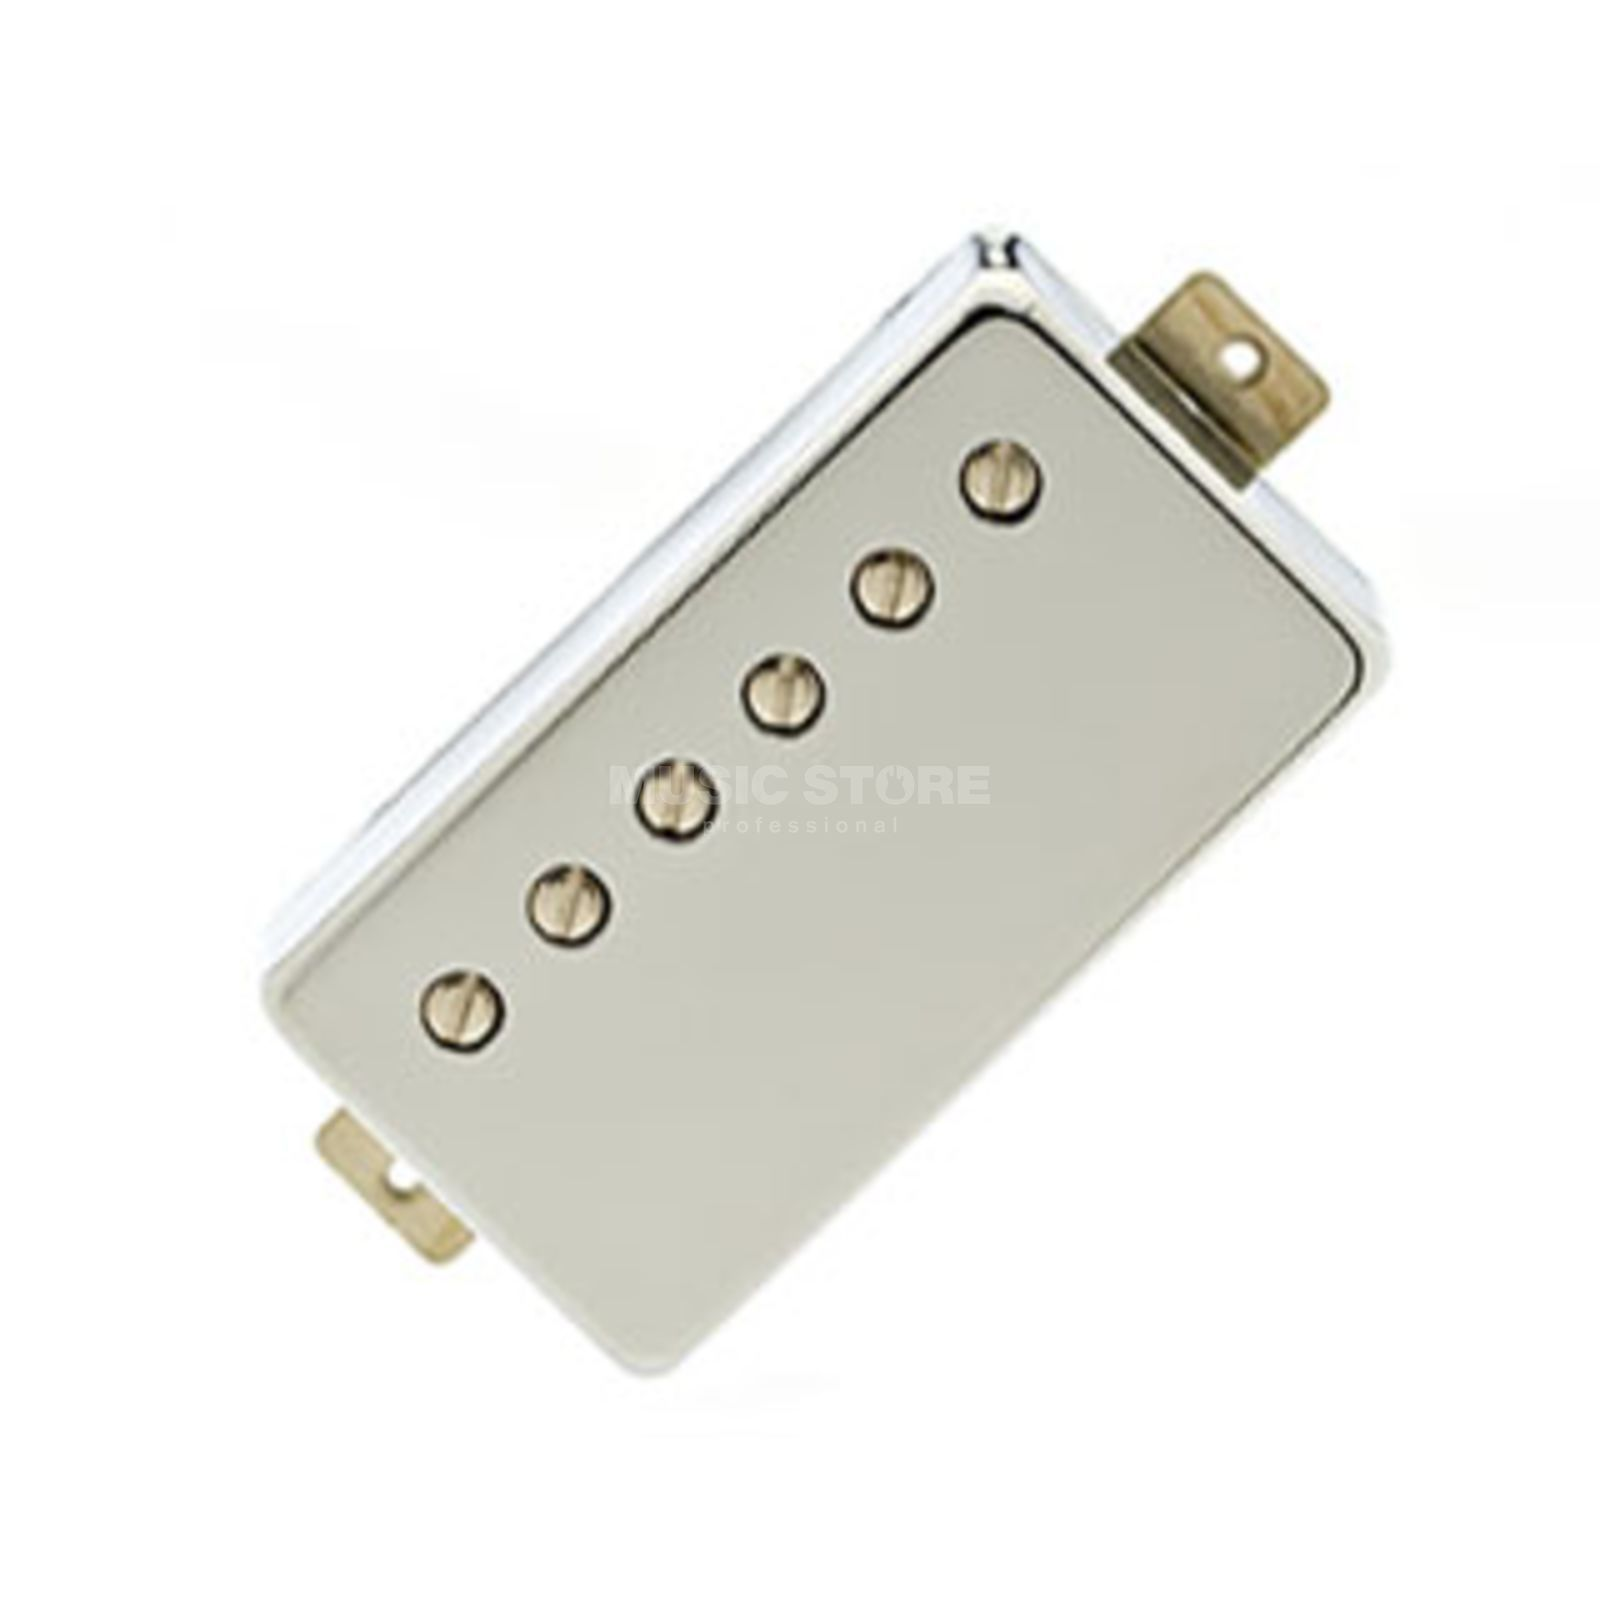 Lollar Guitars Inc. Imperial Humbucker Neck Nickel Std wound Produktbild